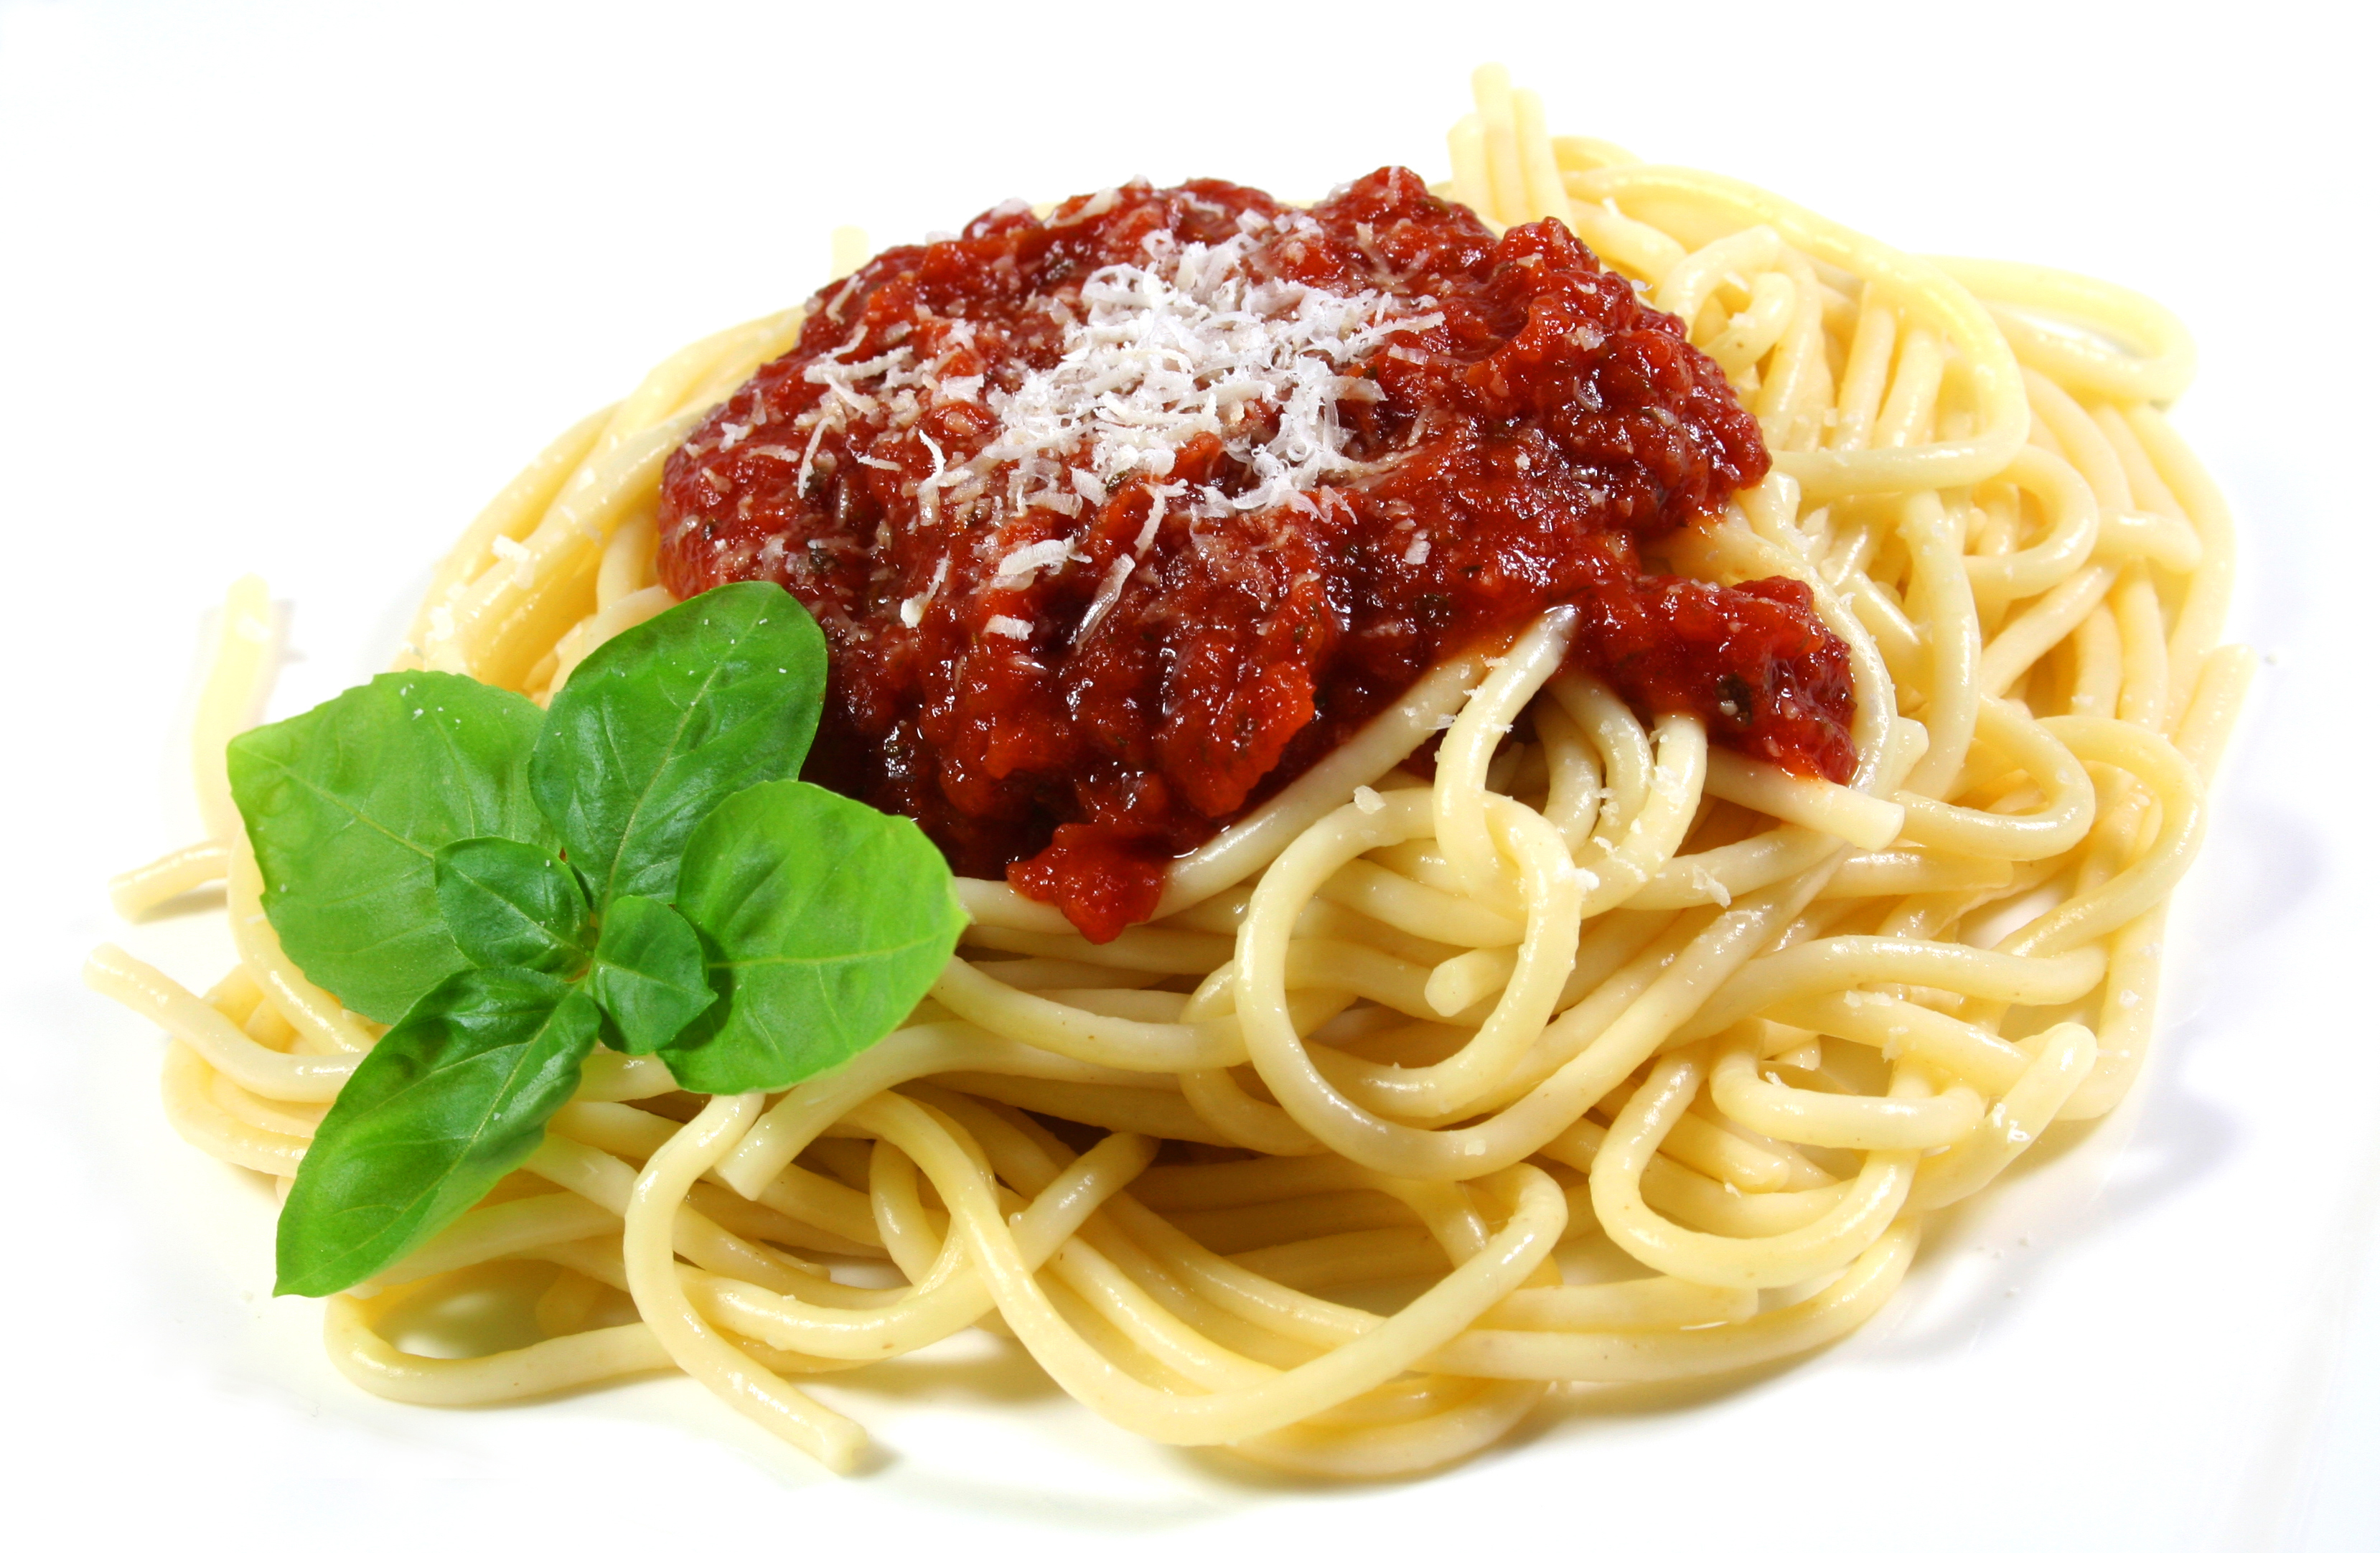 spaghetti wallpapers high quality download free